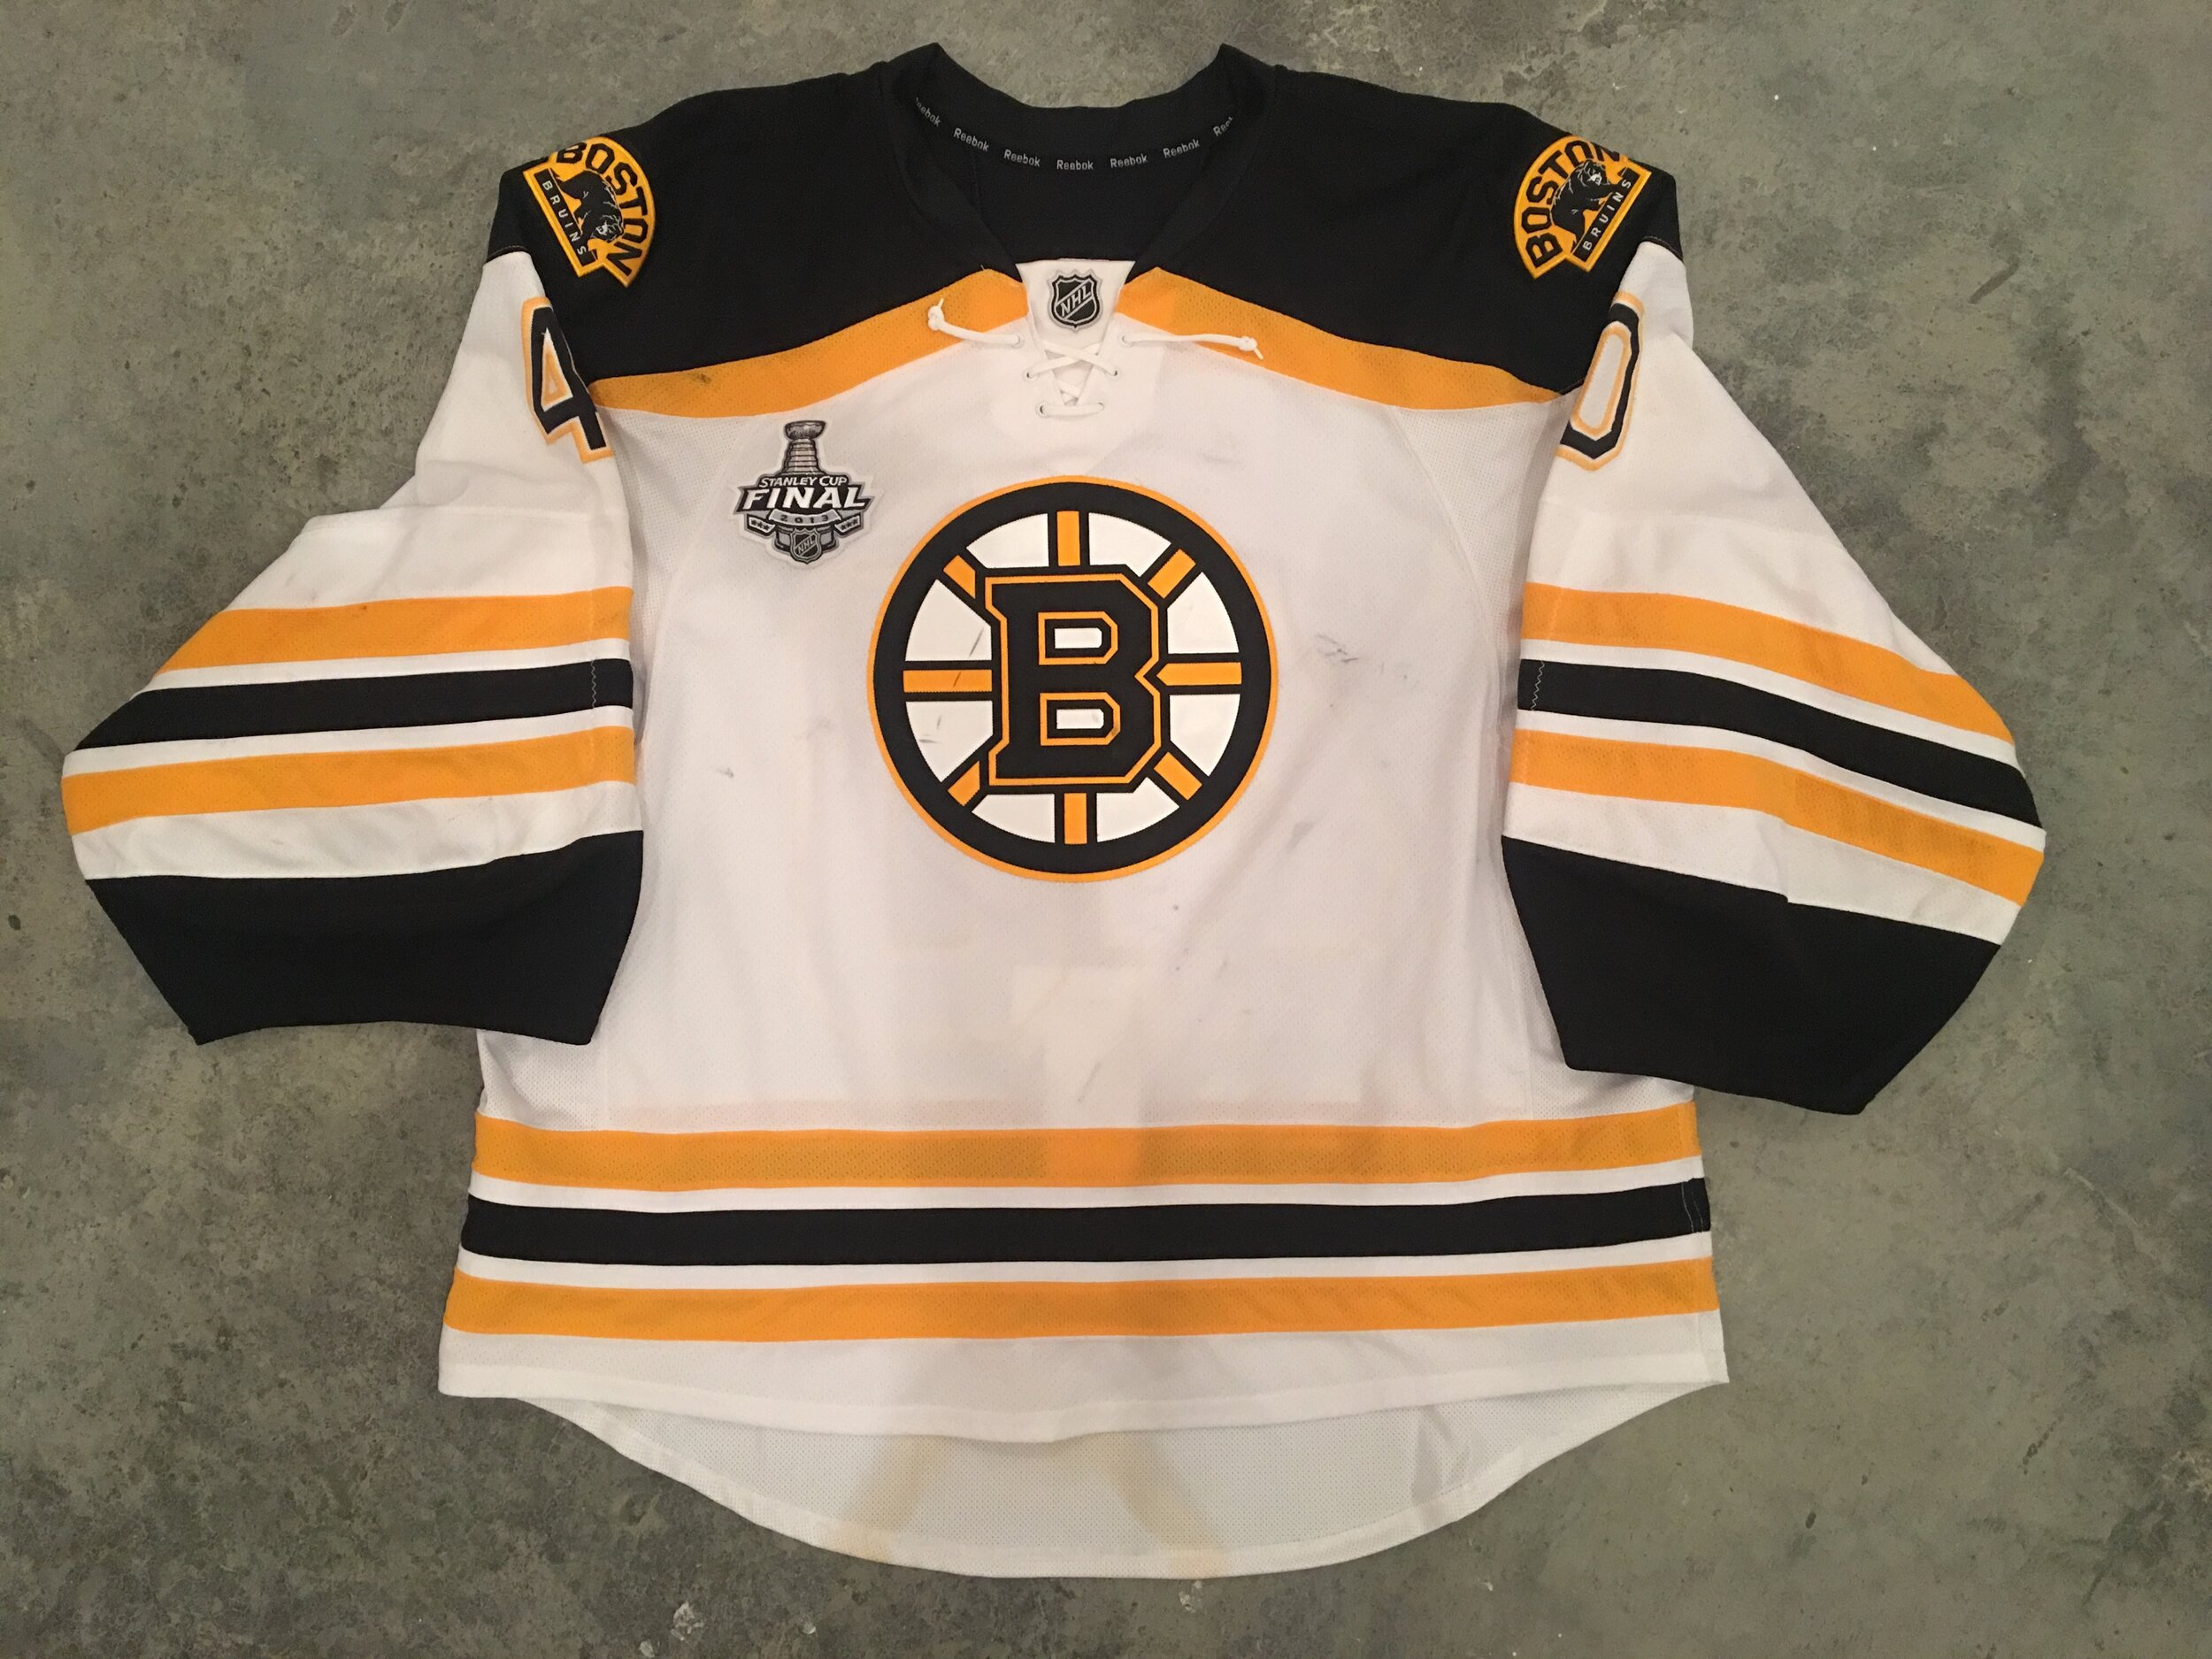 2013 Tuuka Rask game worn road jersey with 2013 Stanley Cup Finals patch